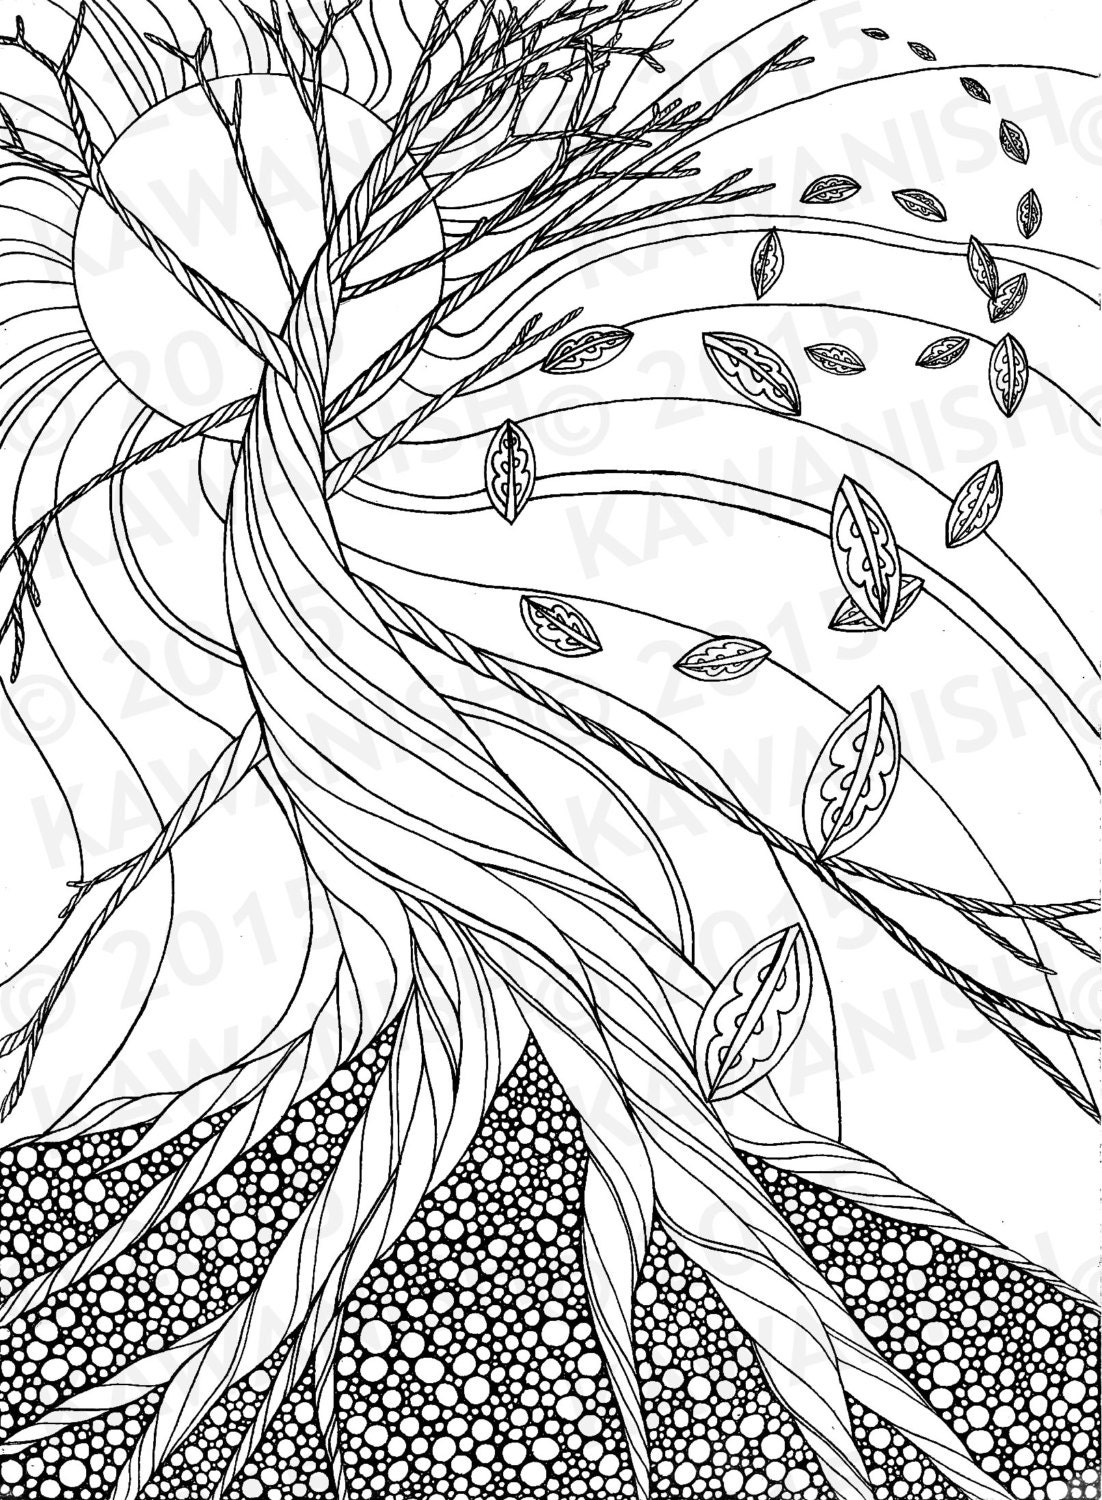 Adult tree coloring pages